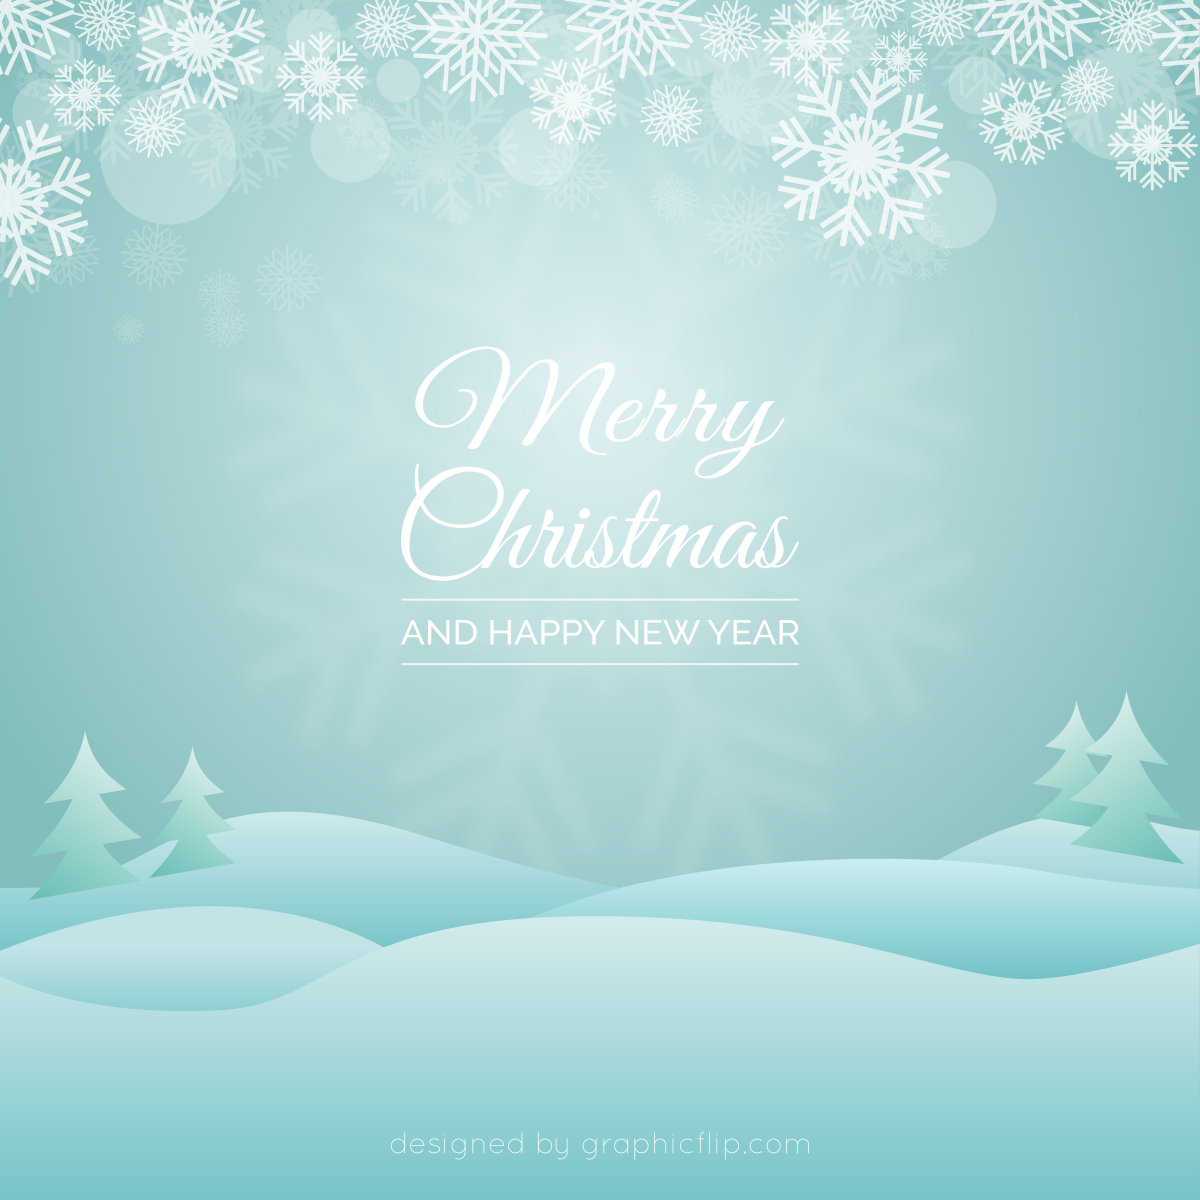 free download christmas greeting vector with snowy landscape